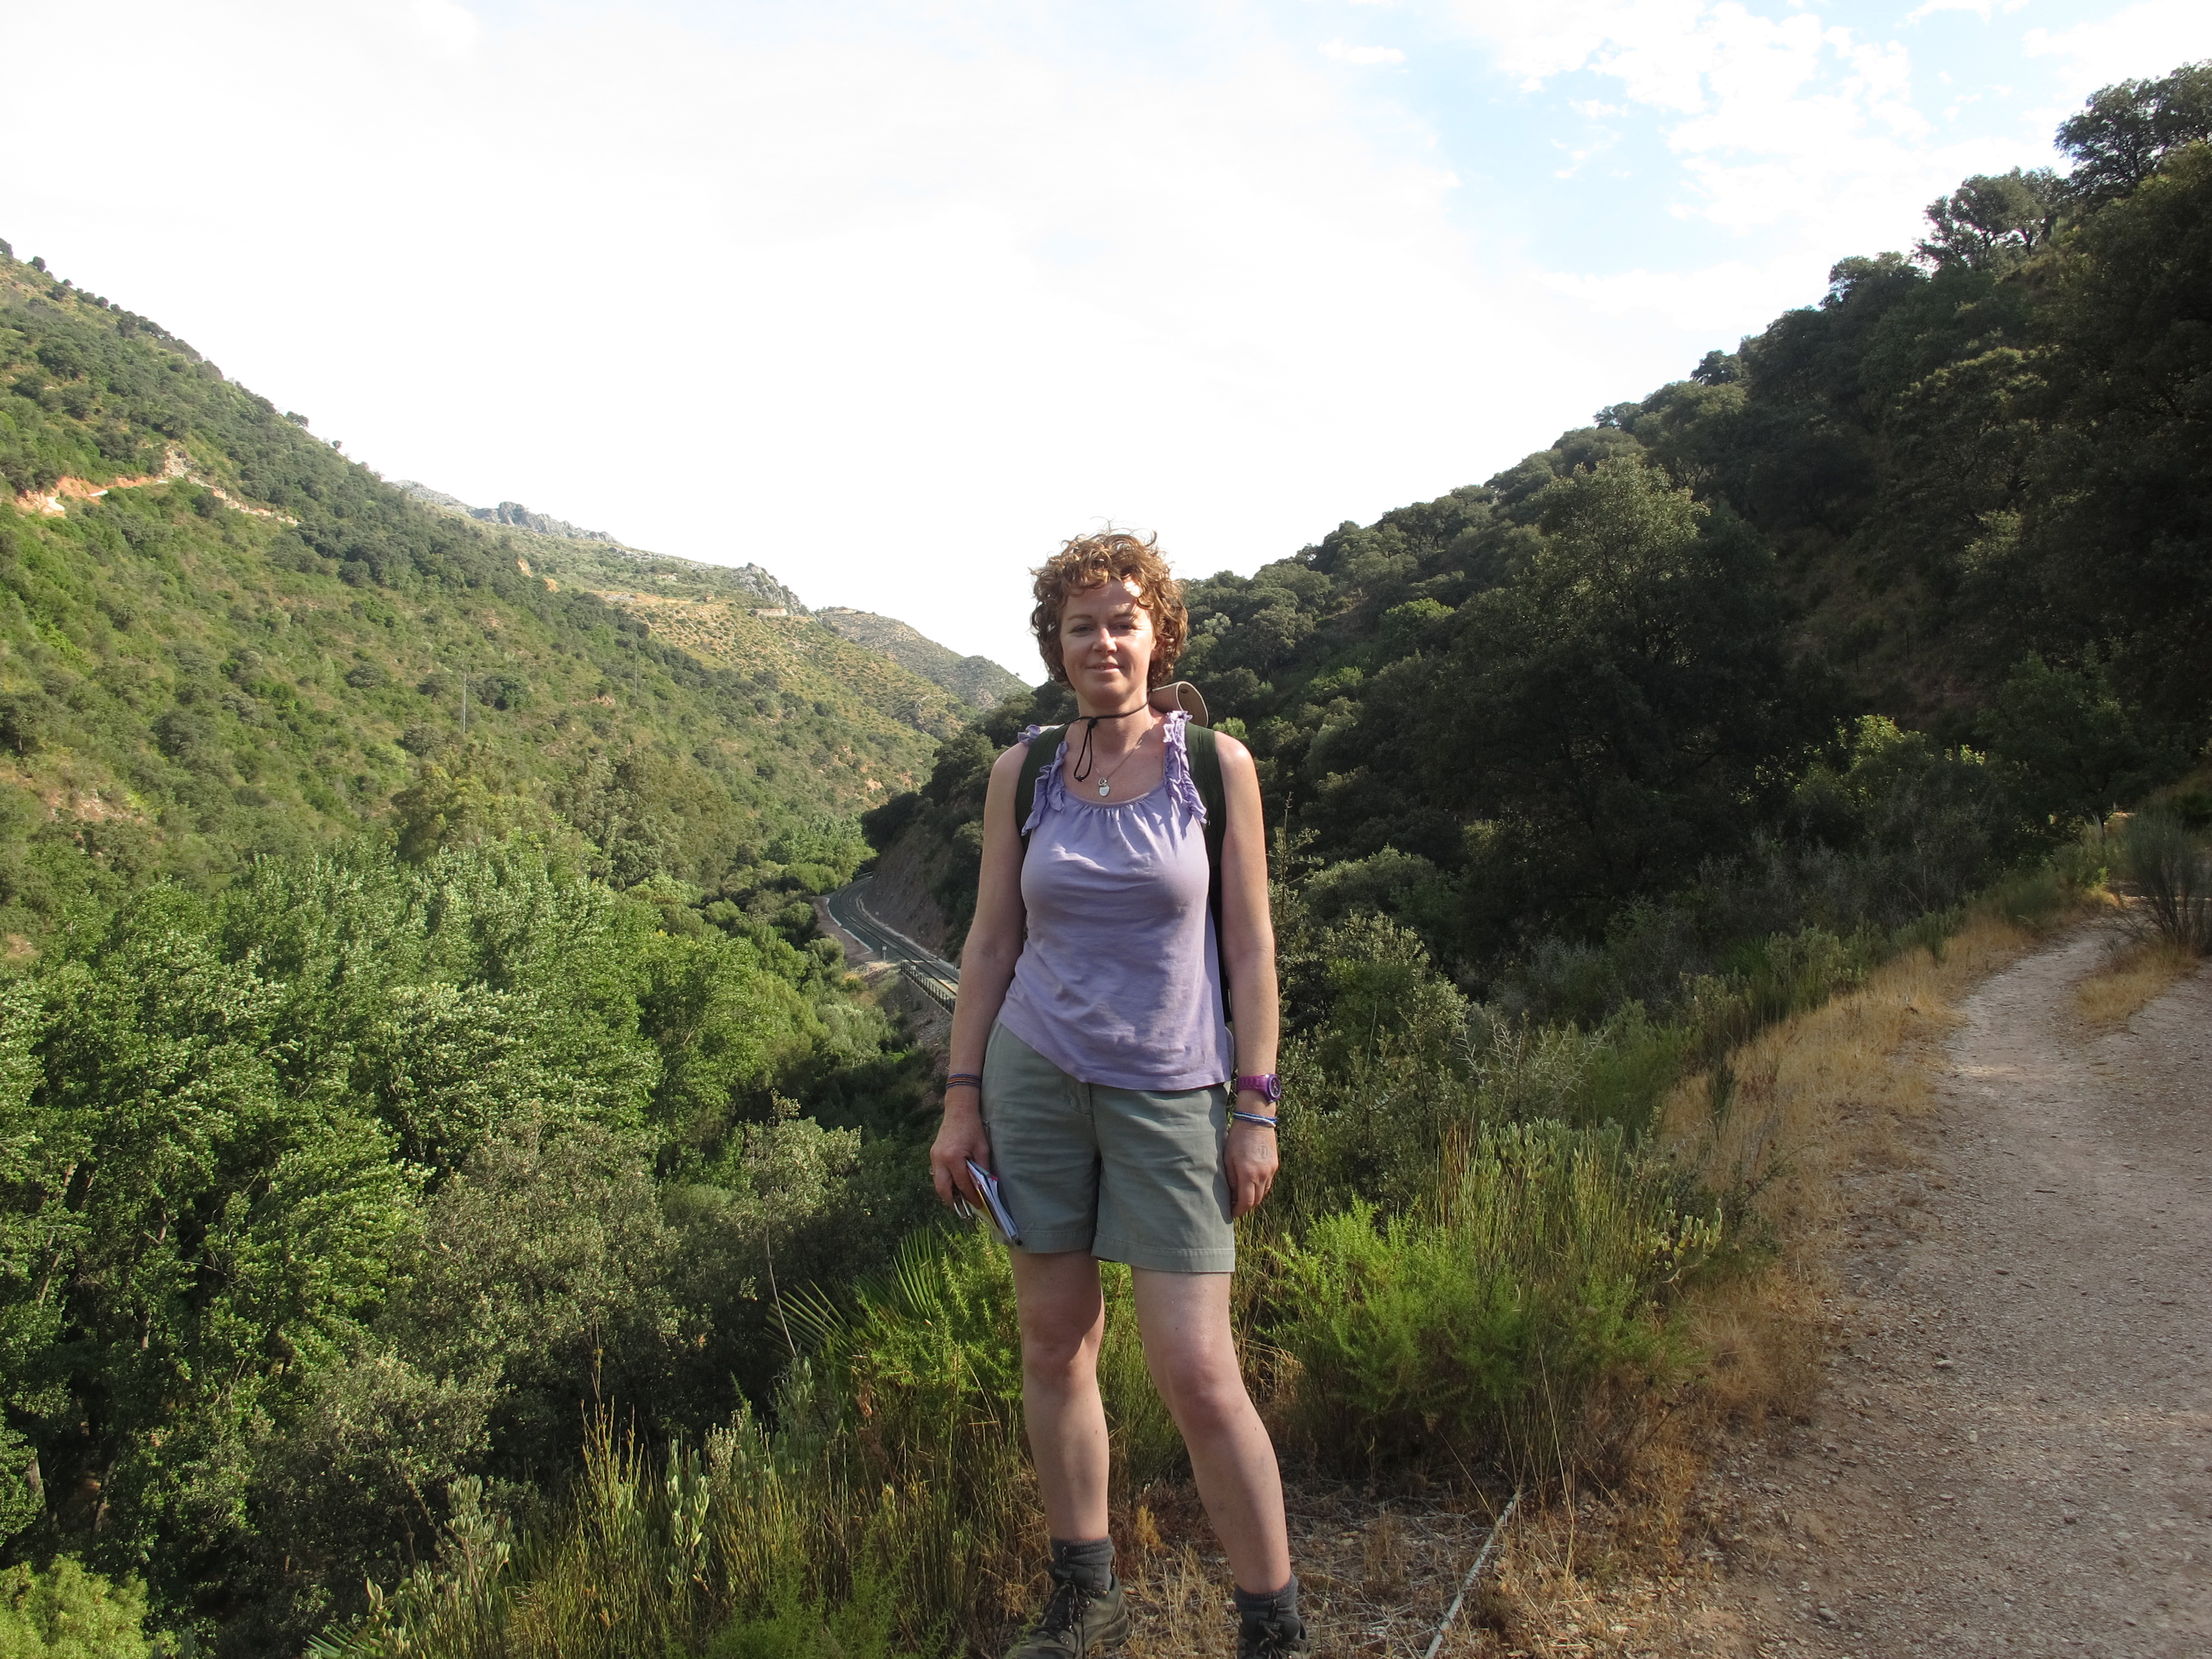 Deep in the wilds of Andalucia, pretending to be a hiker.